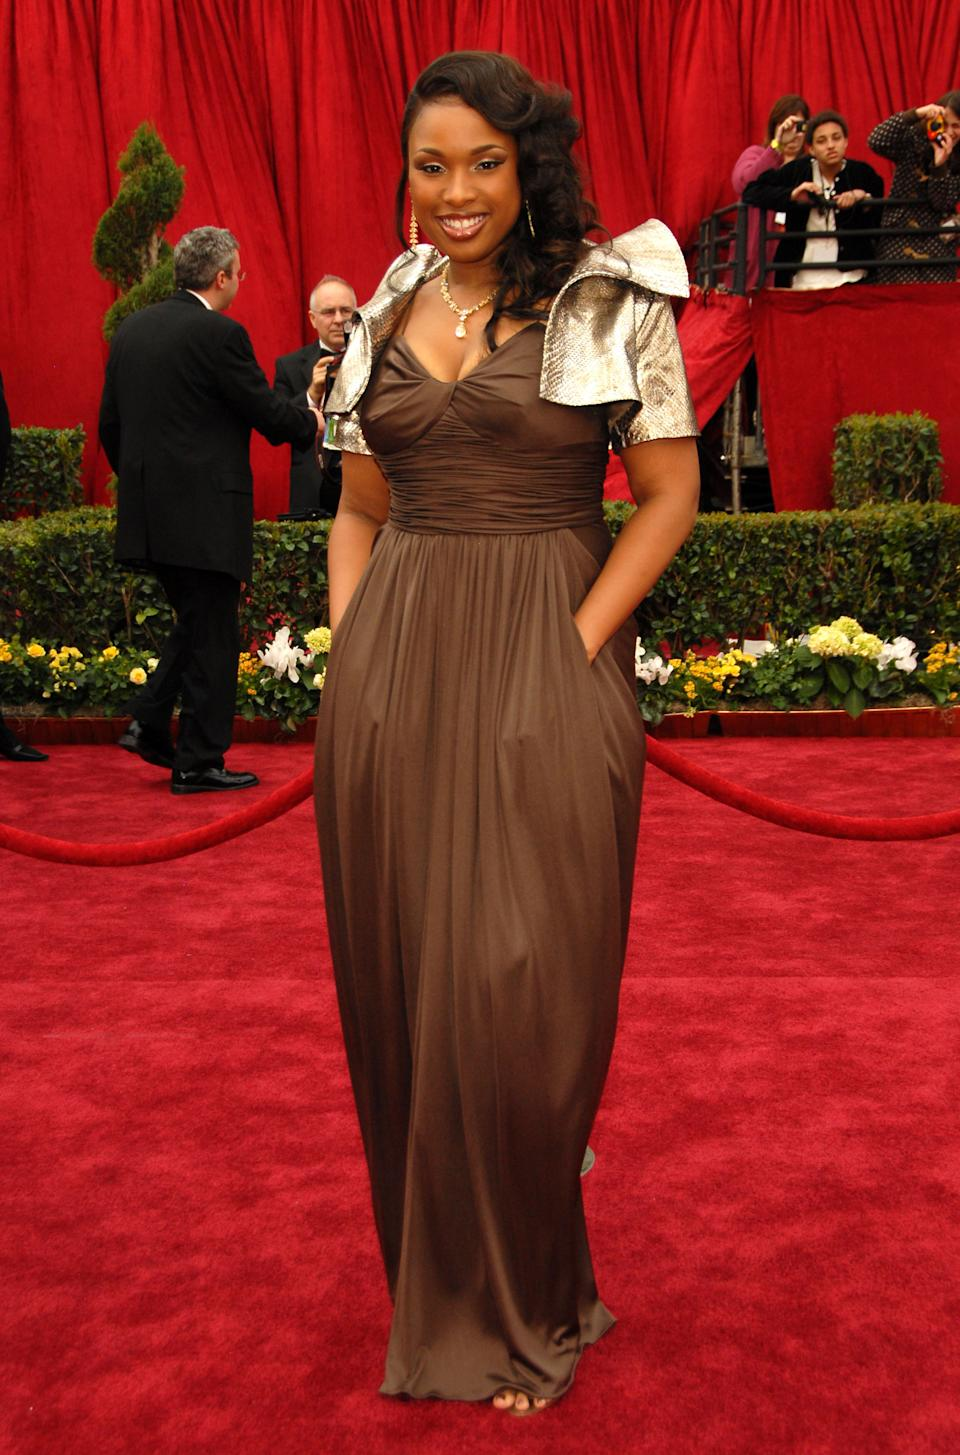 """<p>The """"Dreamgirls"""" star had a red carpet foible before taking home the award for Best Supporting Actress. Luckily, Hudson ditched the silver bolero before mixing metals with her gold statue.</p>"""